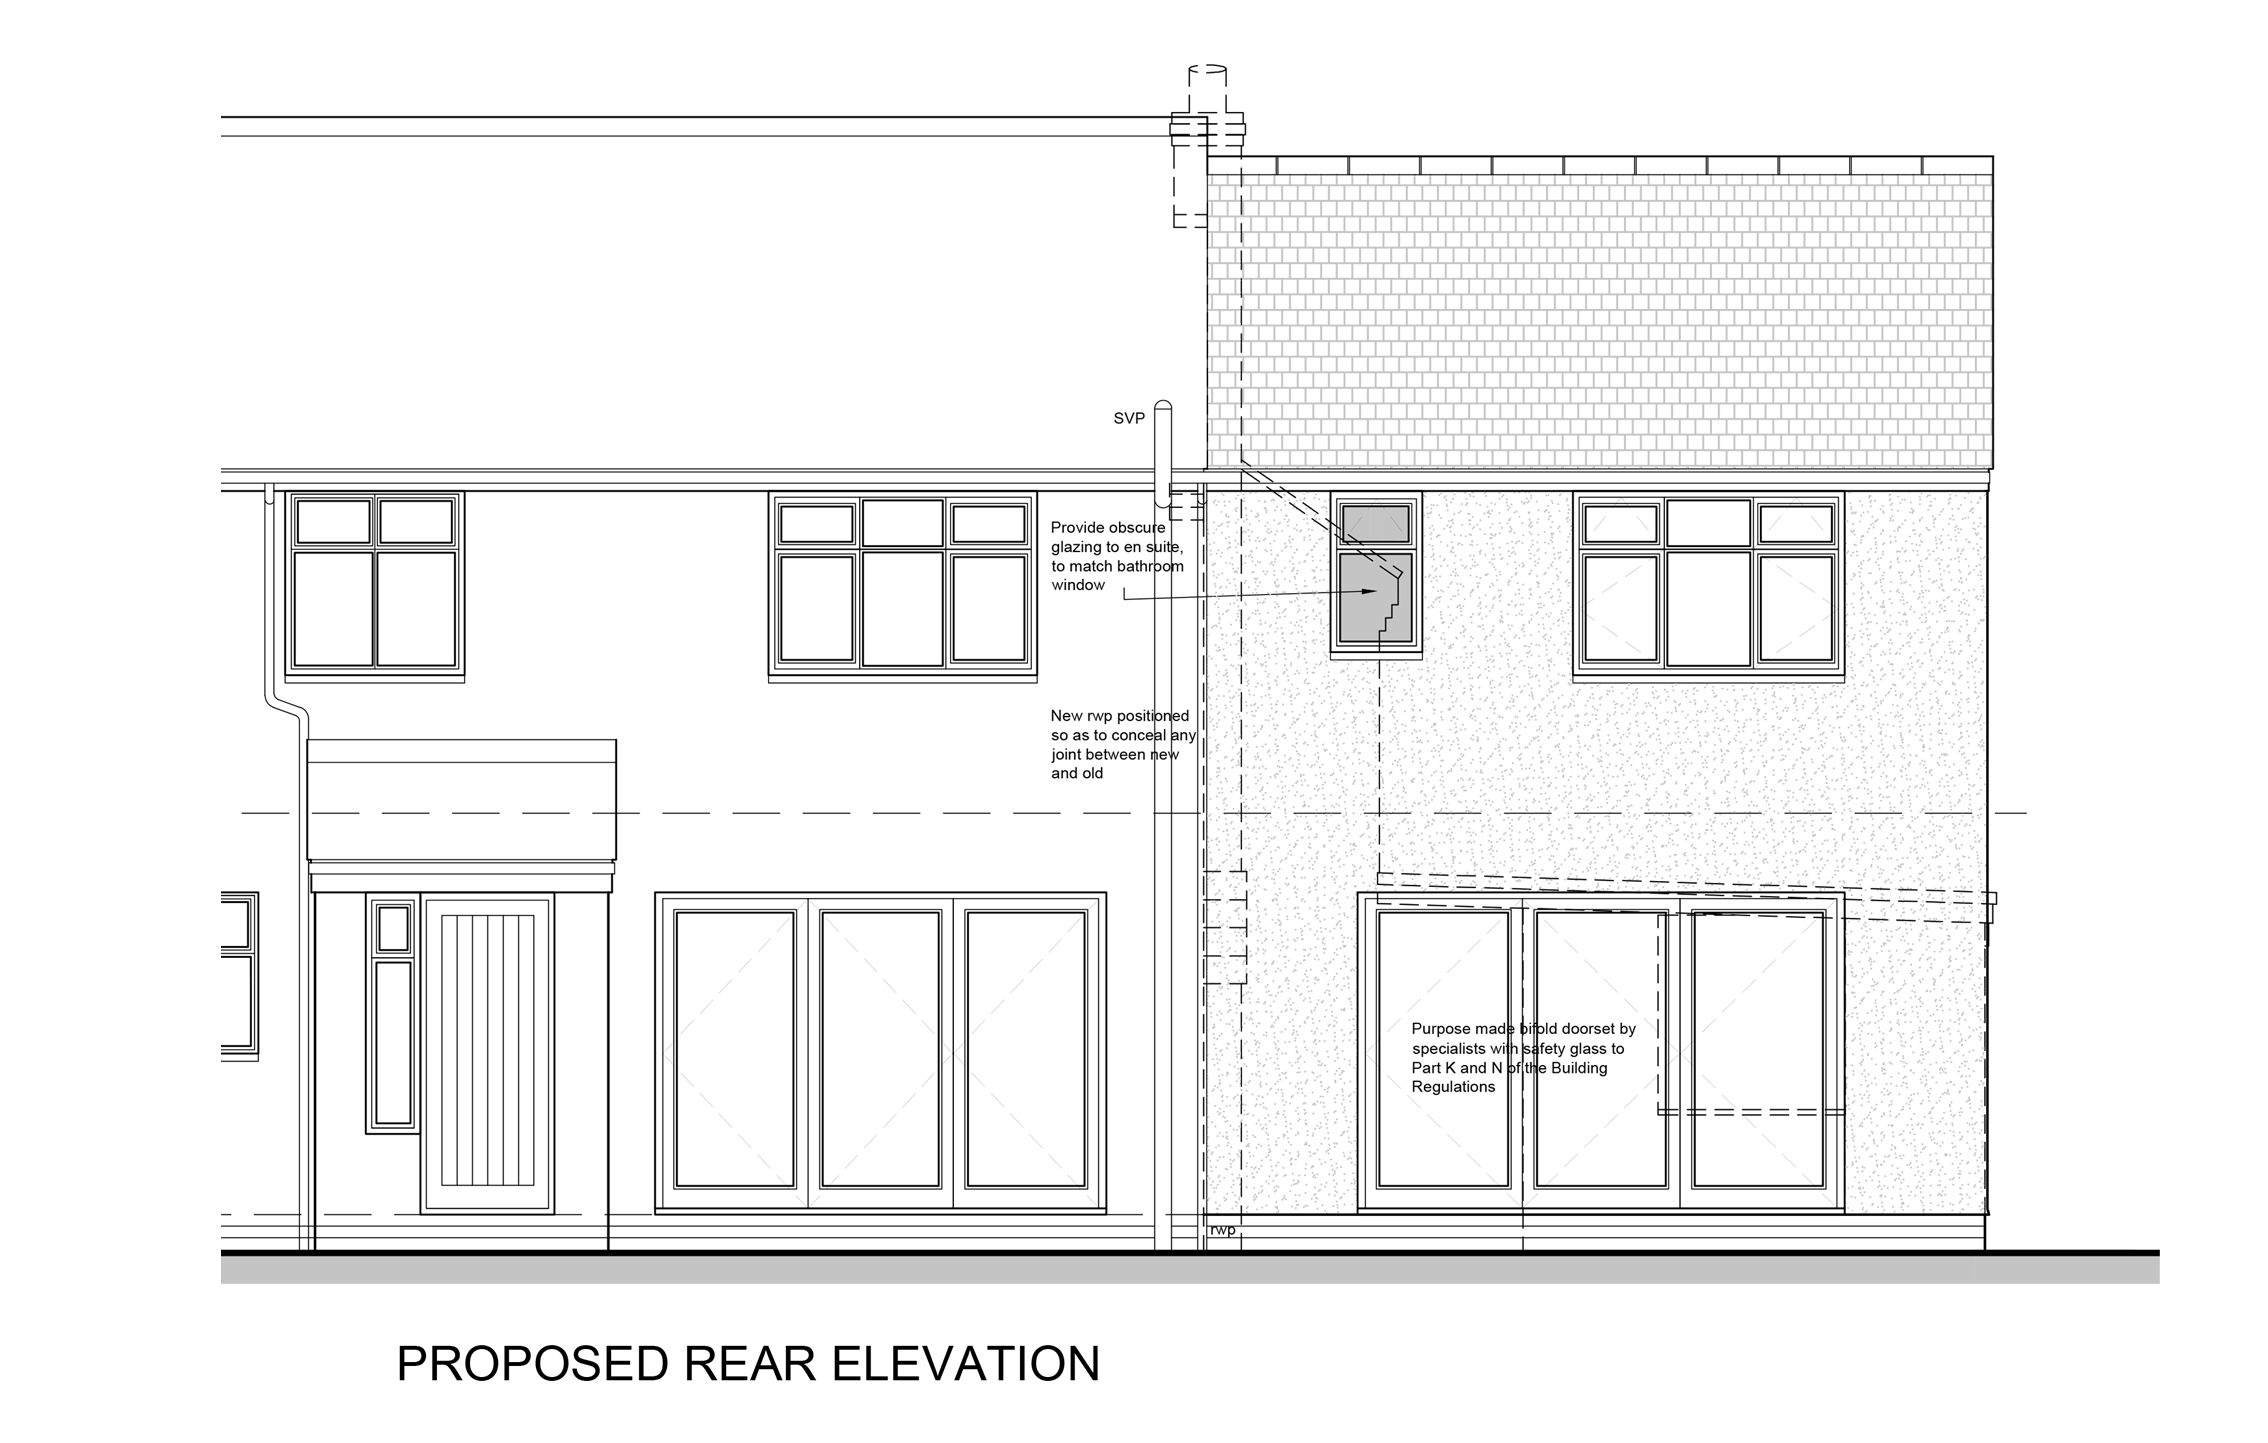 Rear Elevation Proposed